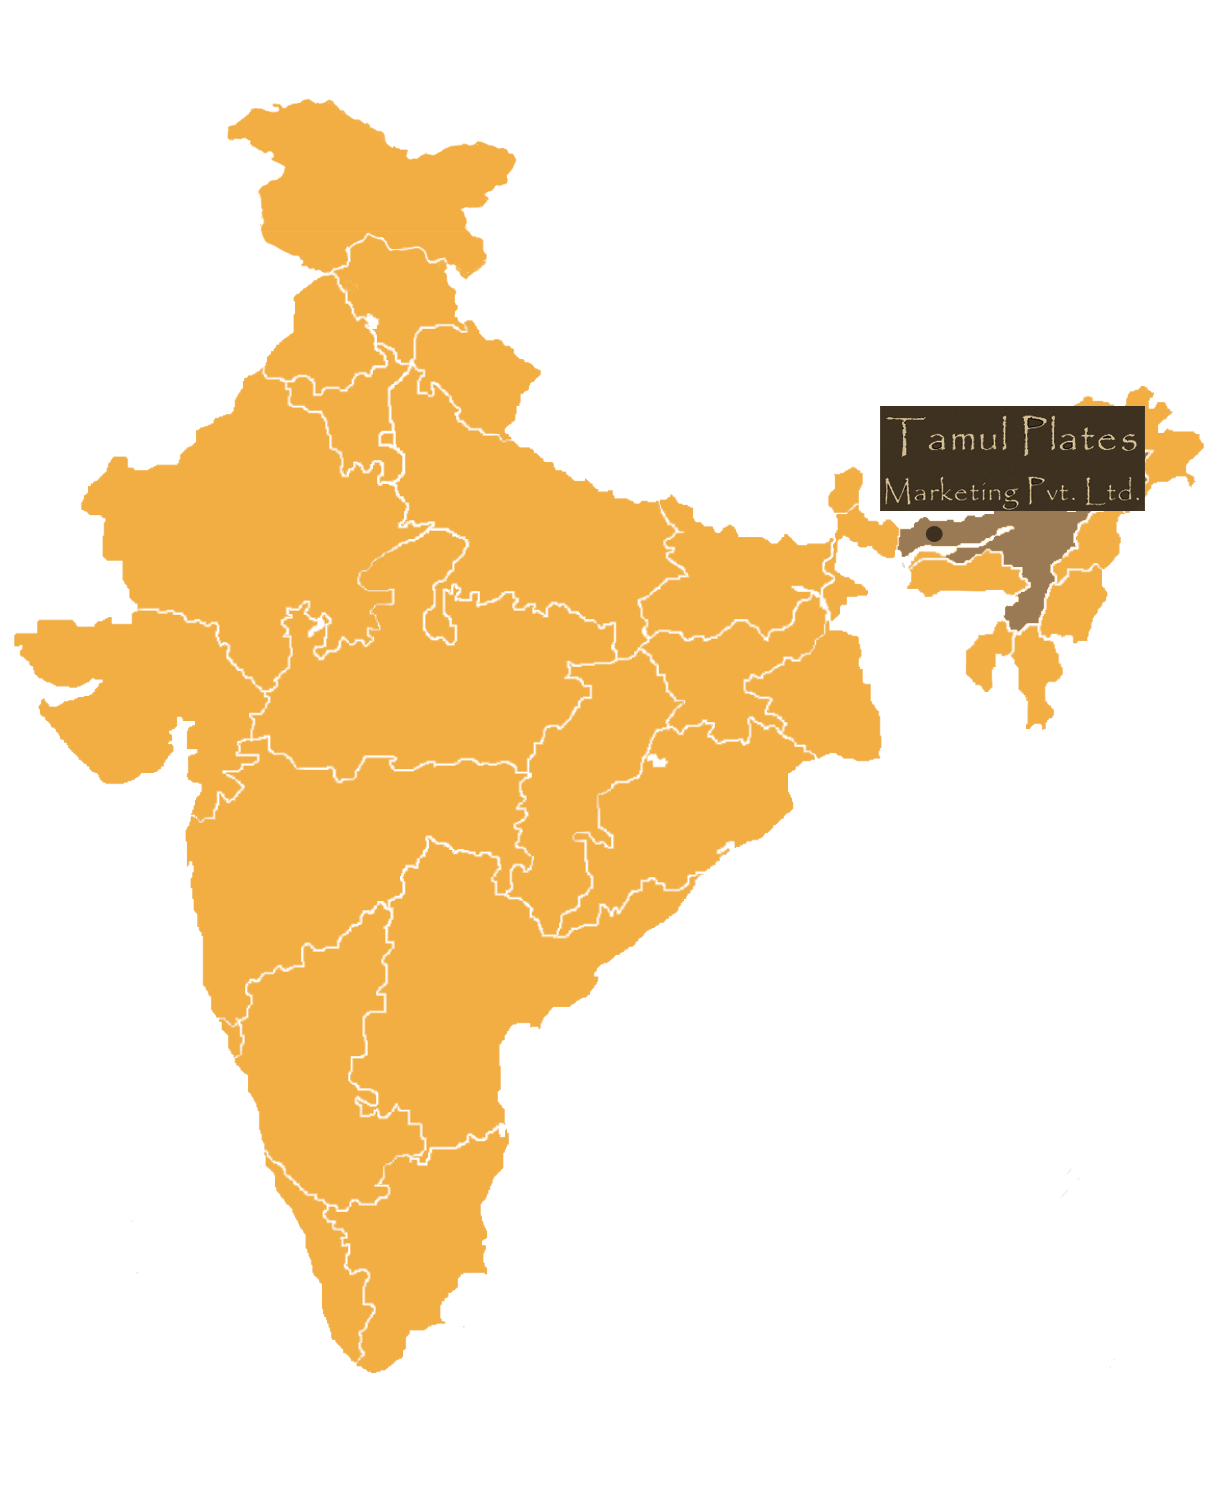 tamul-plates-map-with-logo.png